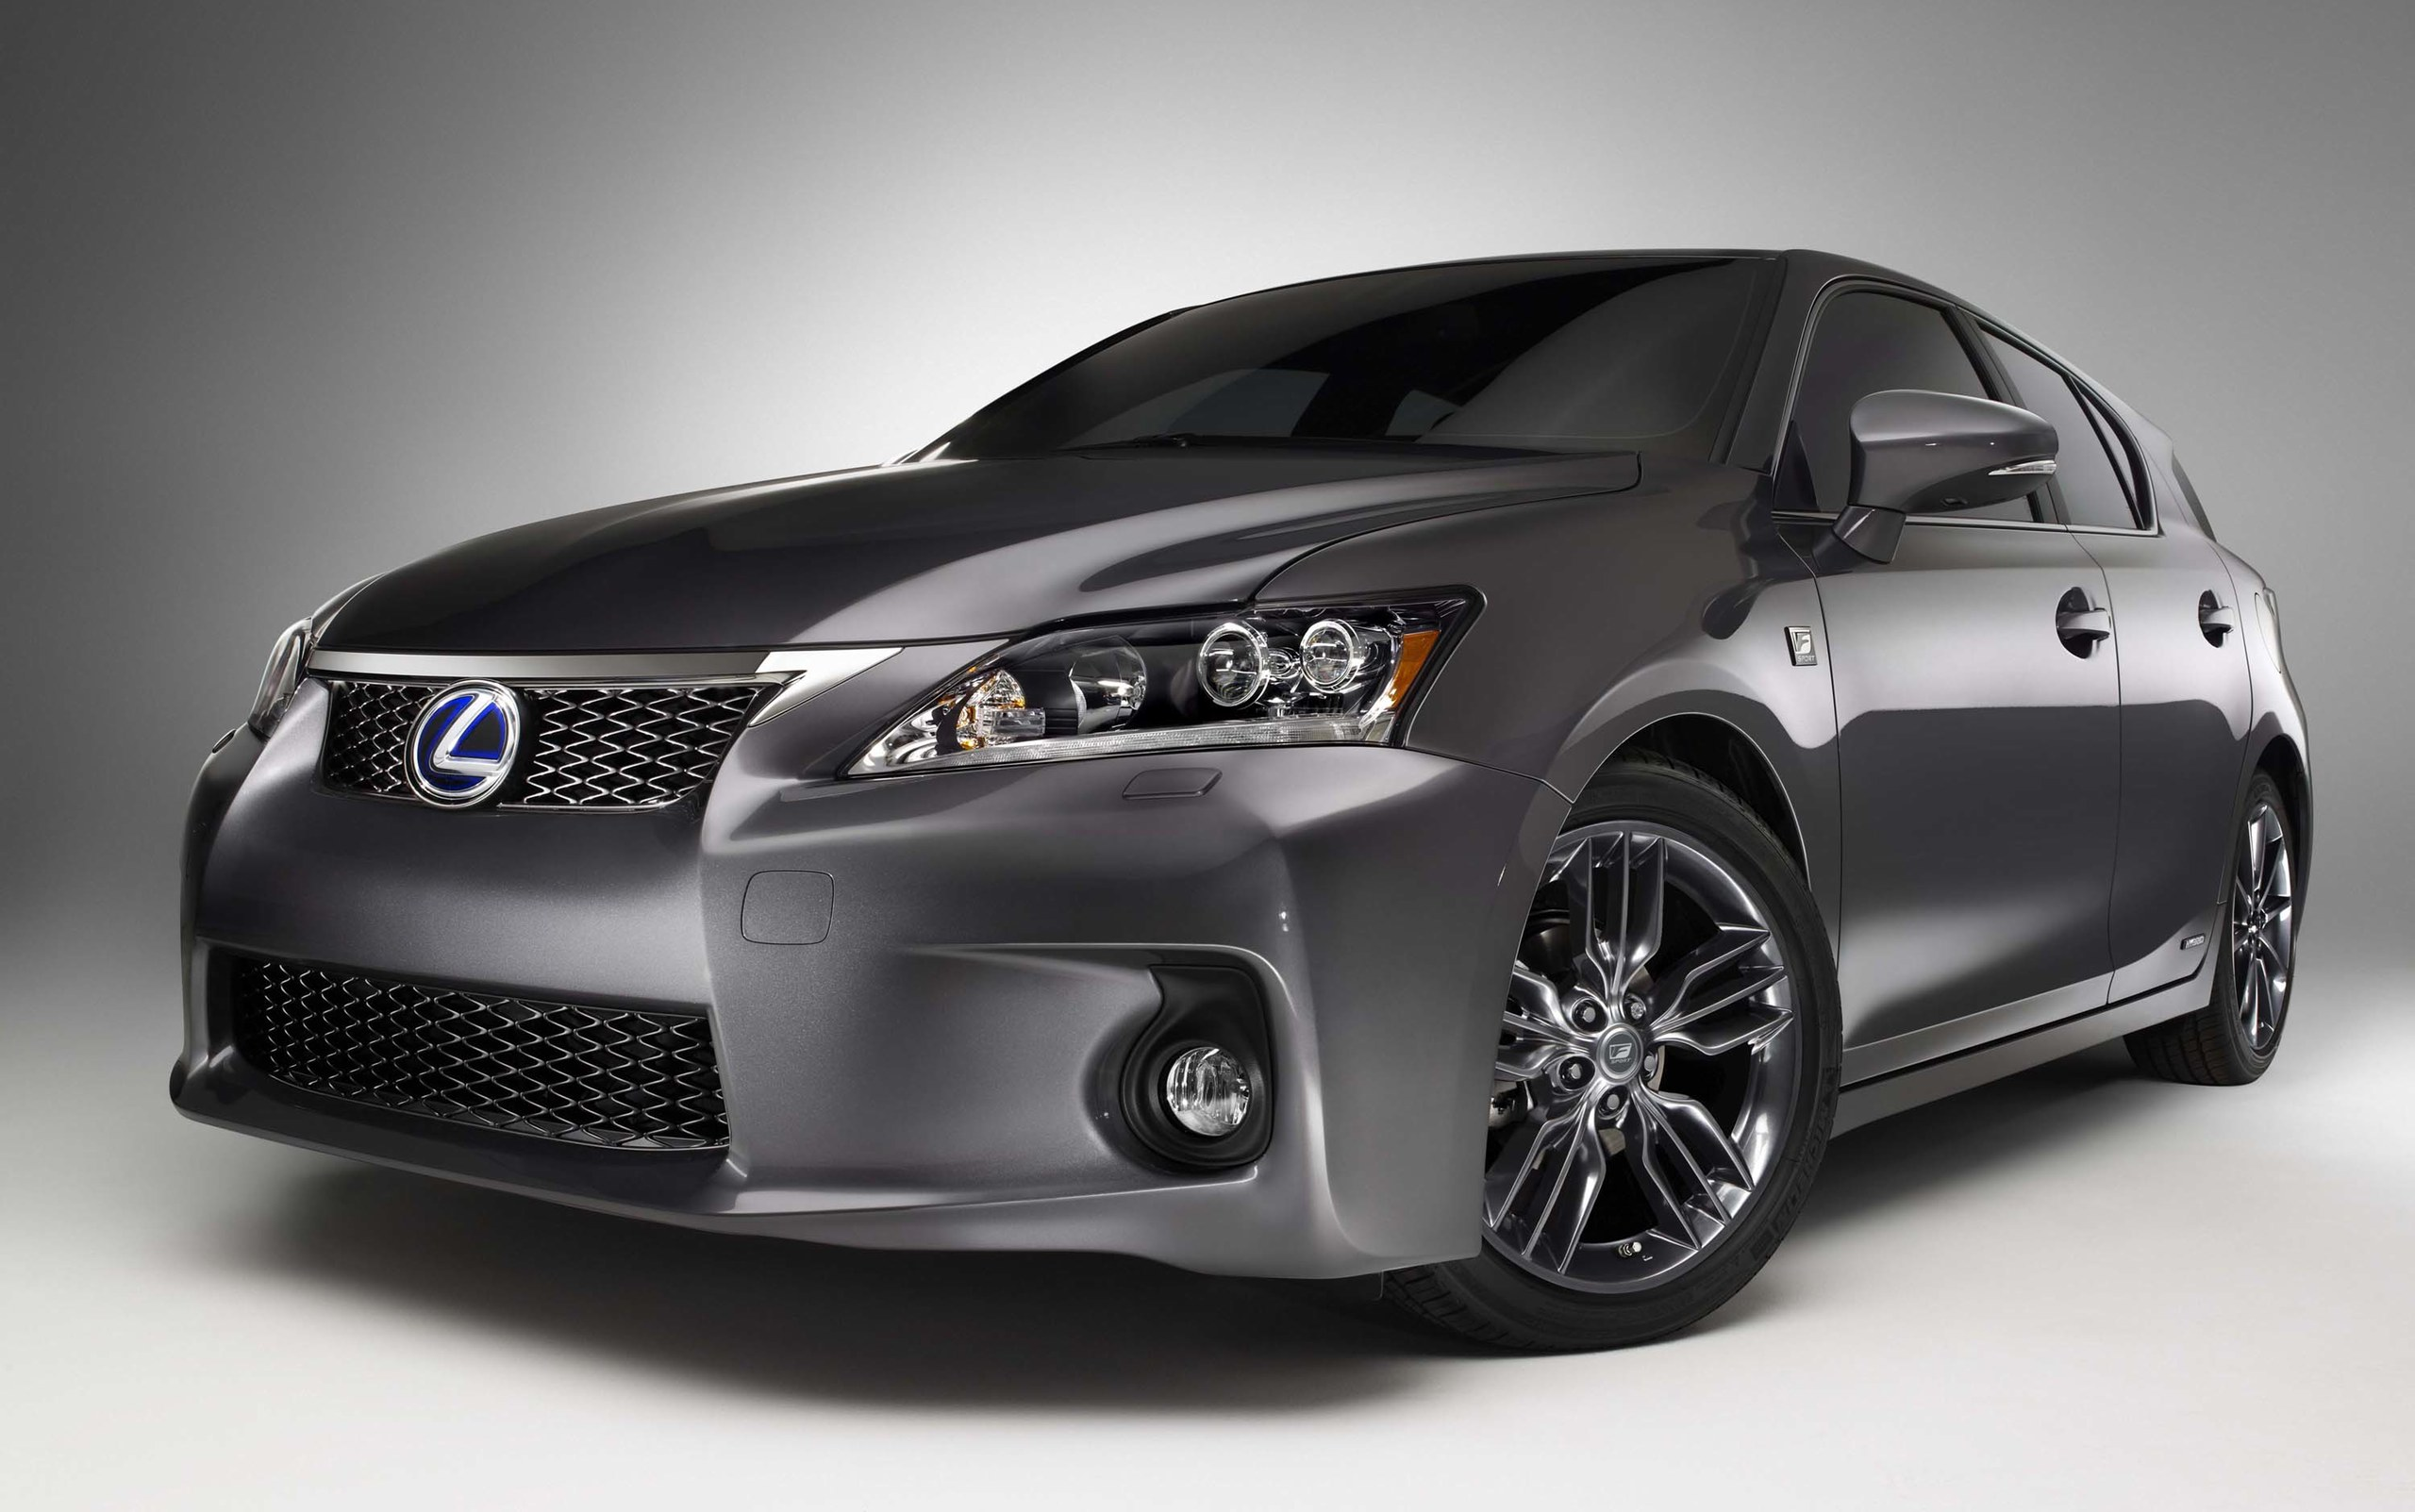 2012 lexus ct 200h f sport special edition lexus enthusiast. Black Bedroom Furniture Sets. Home Design Ideas